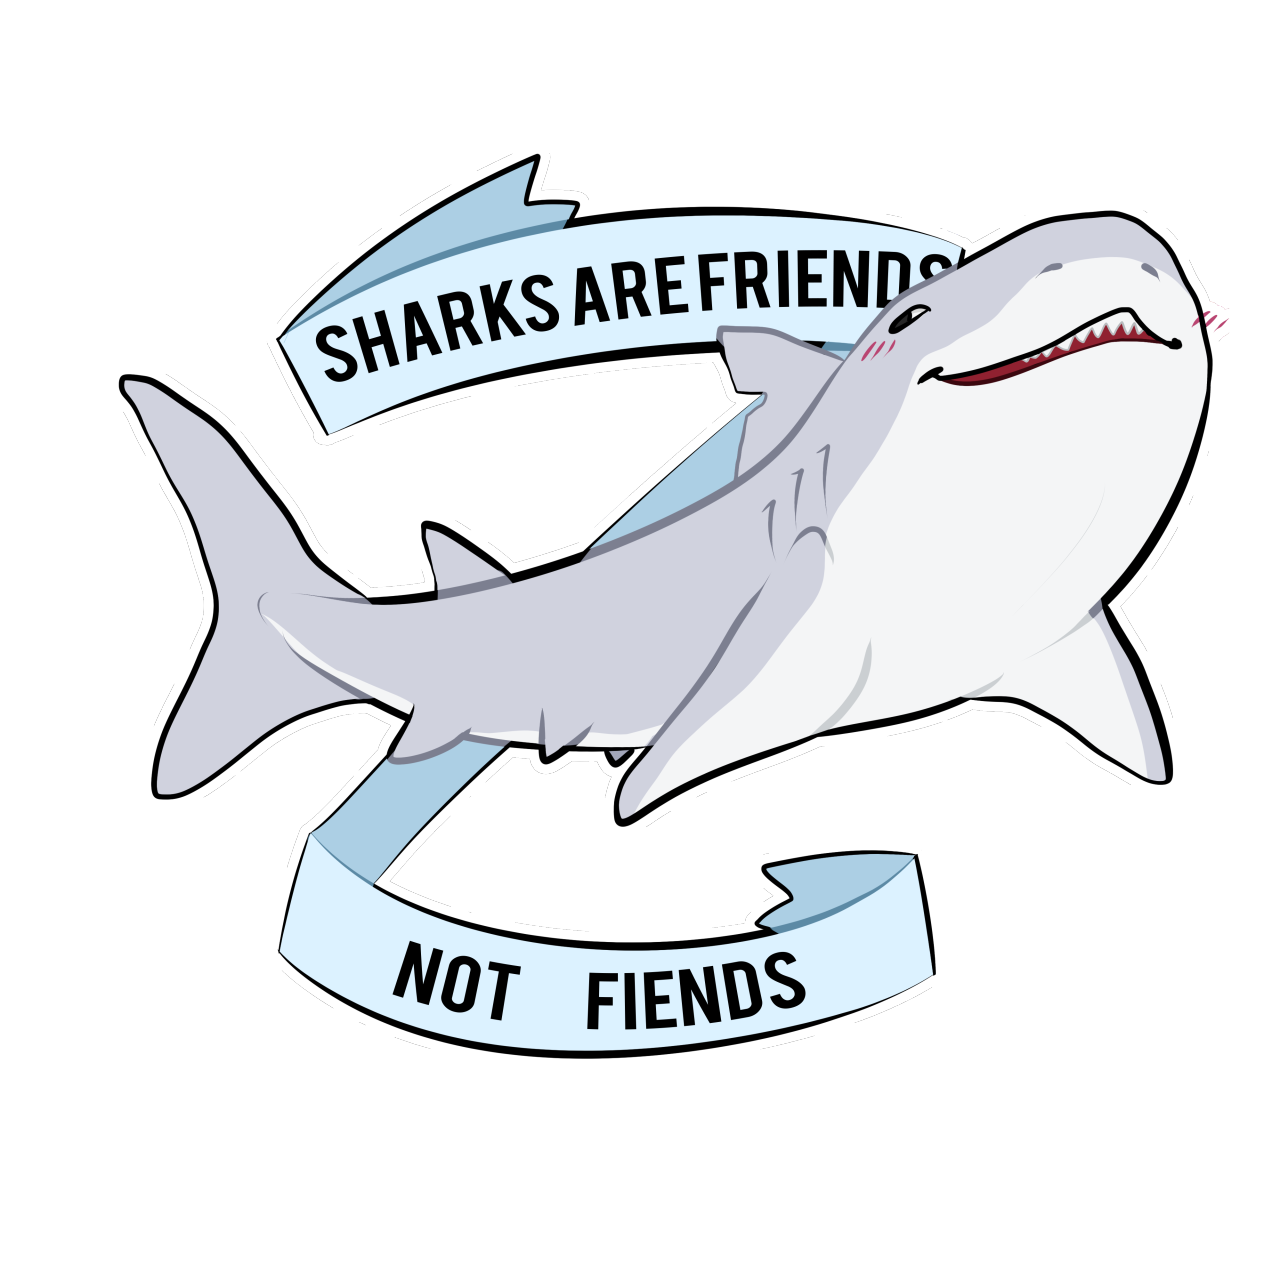 clip art royalty free library Are friends not fiends. Drawing sharks anime